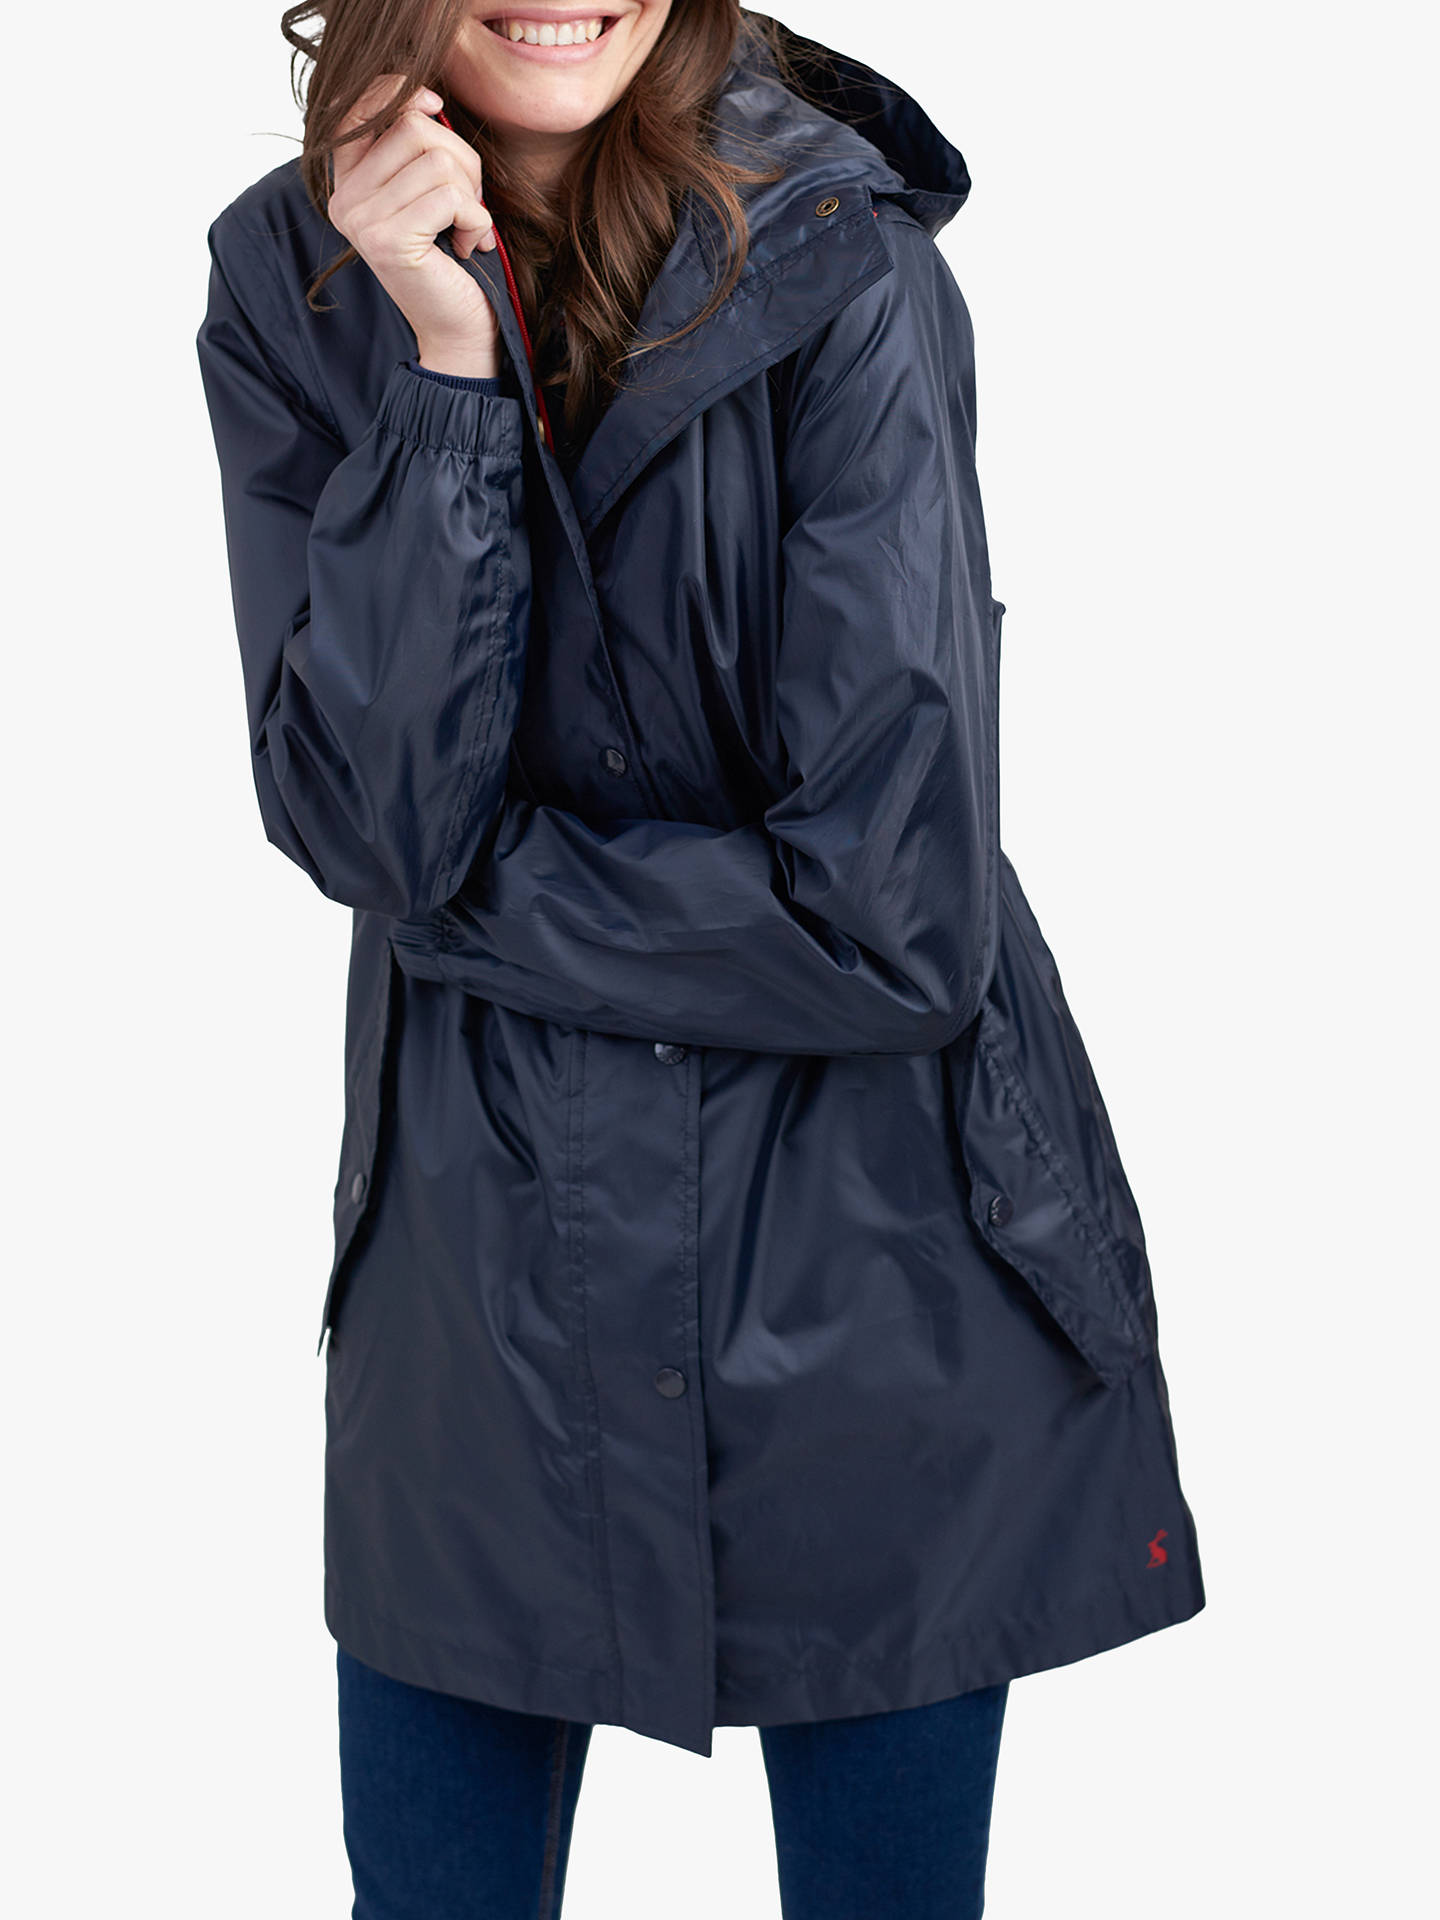 BuyJoules Golightly Pack-Away Waterproof Parka Coat, Marine Navy, 6 Online at johnlewis.com